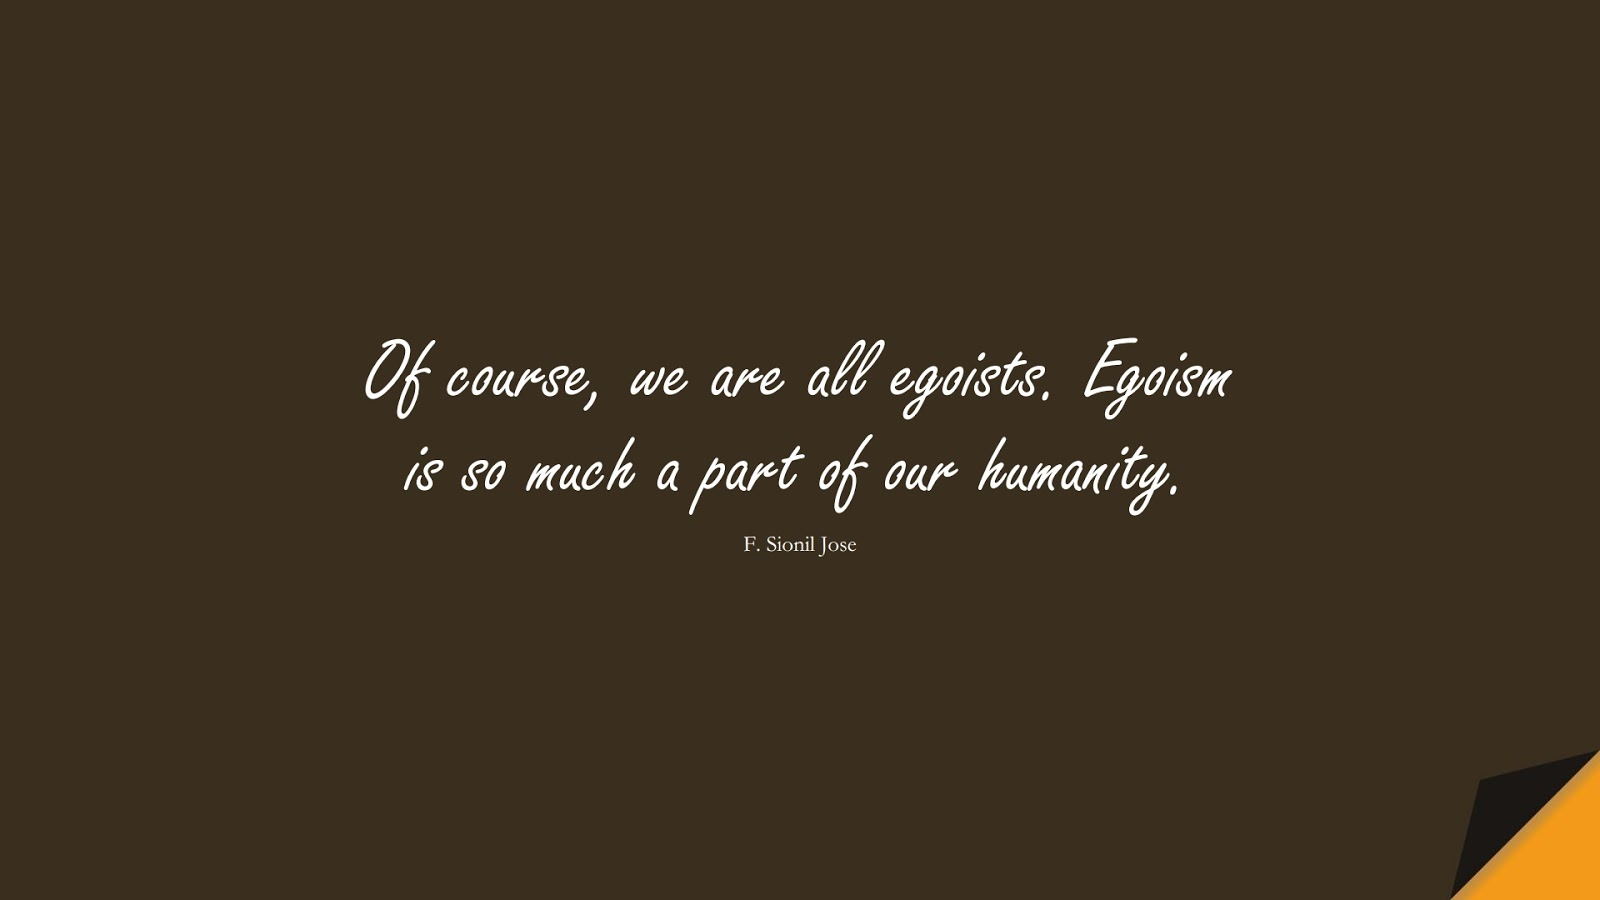 Of course, we are all egoists. Egoism is so much a part of our humanity. (F. Sionil Jose);  #HumanityQuotes